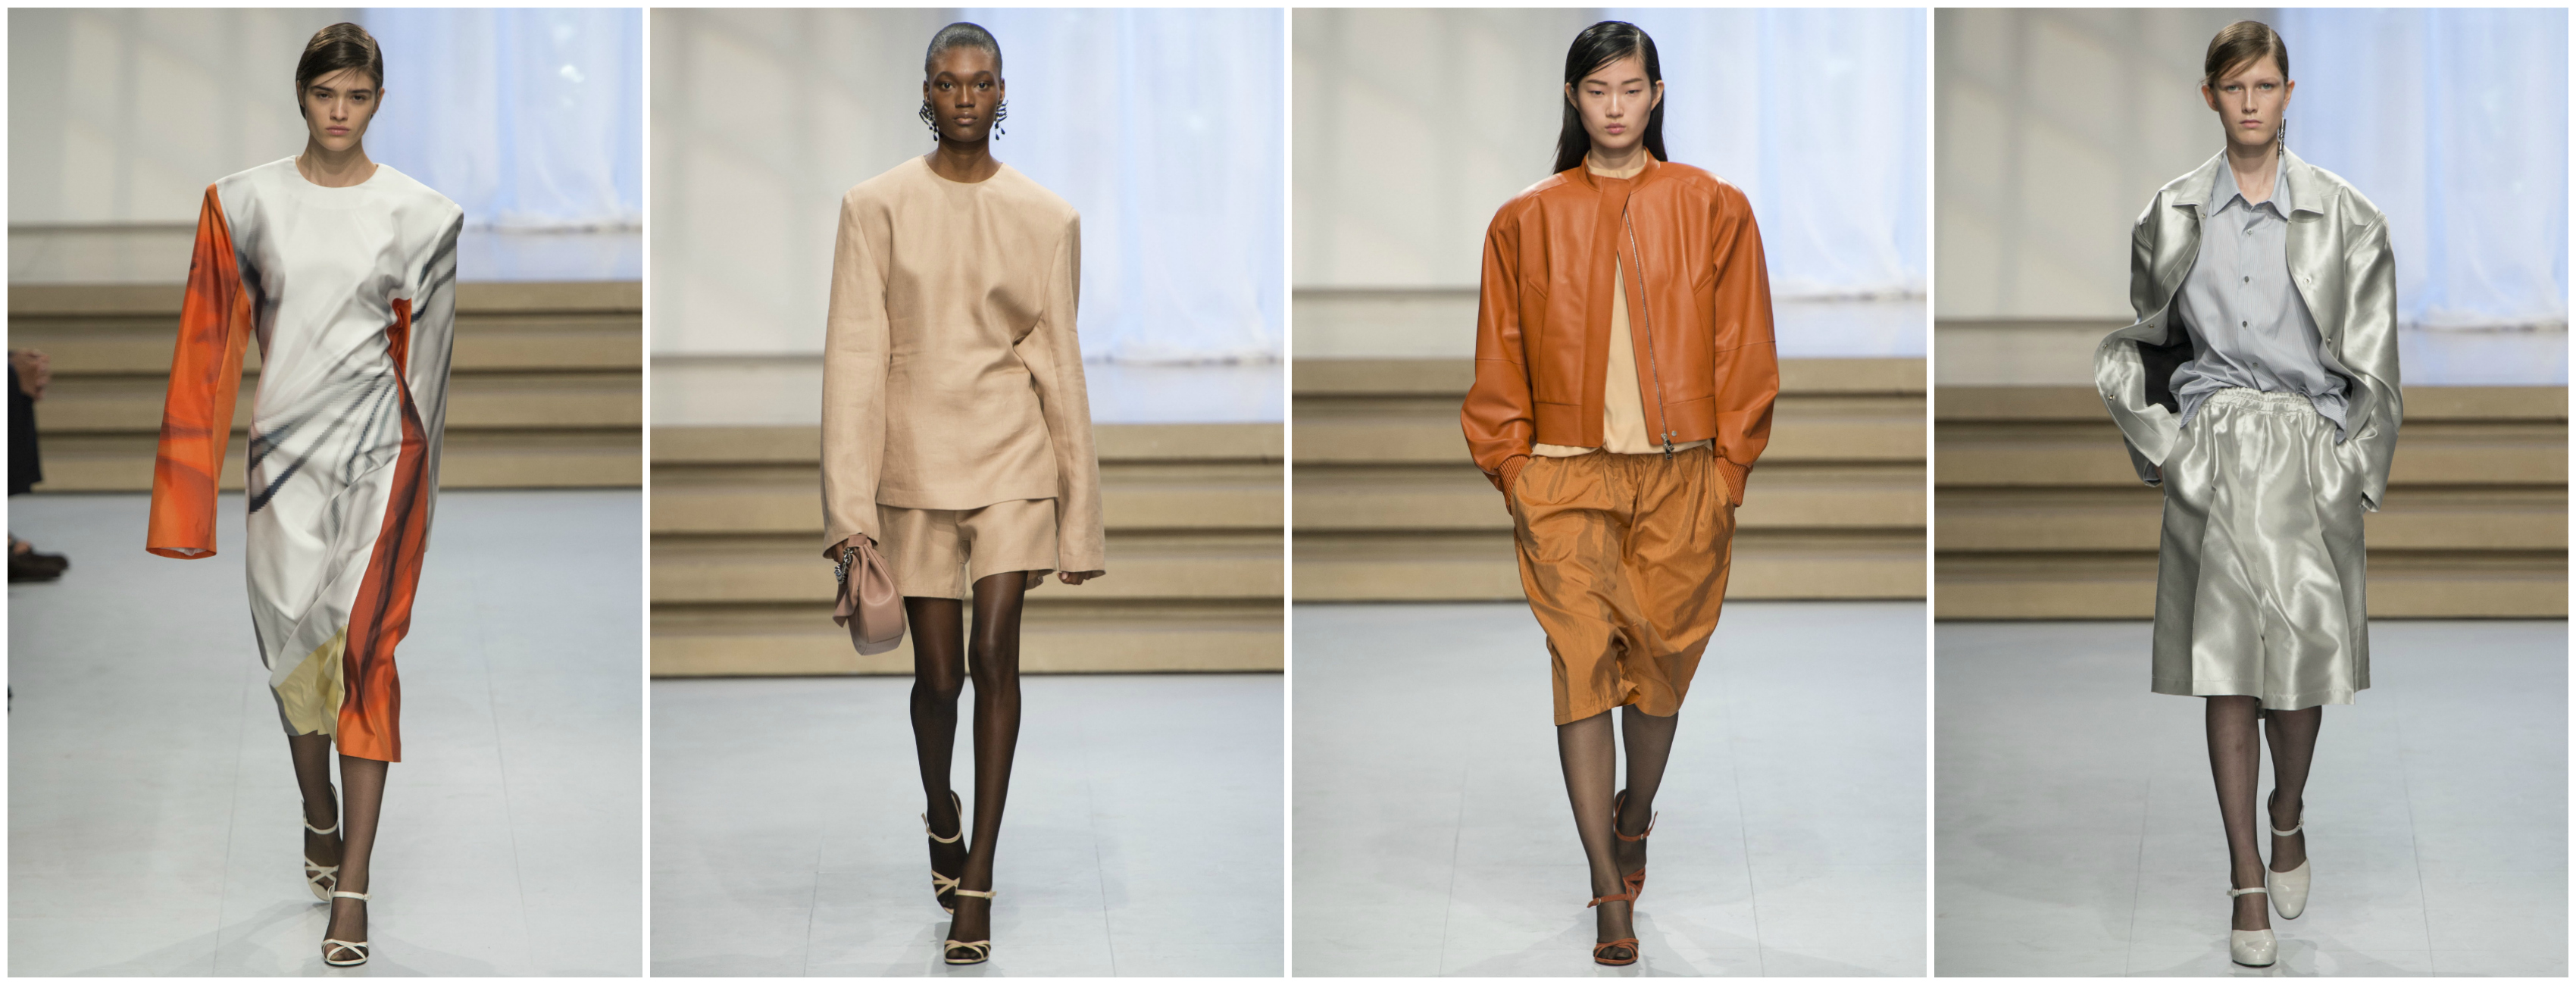 milan fashion week id couture styling jil sander 2016